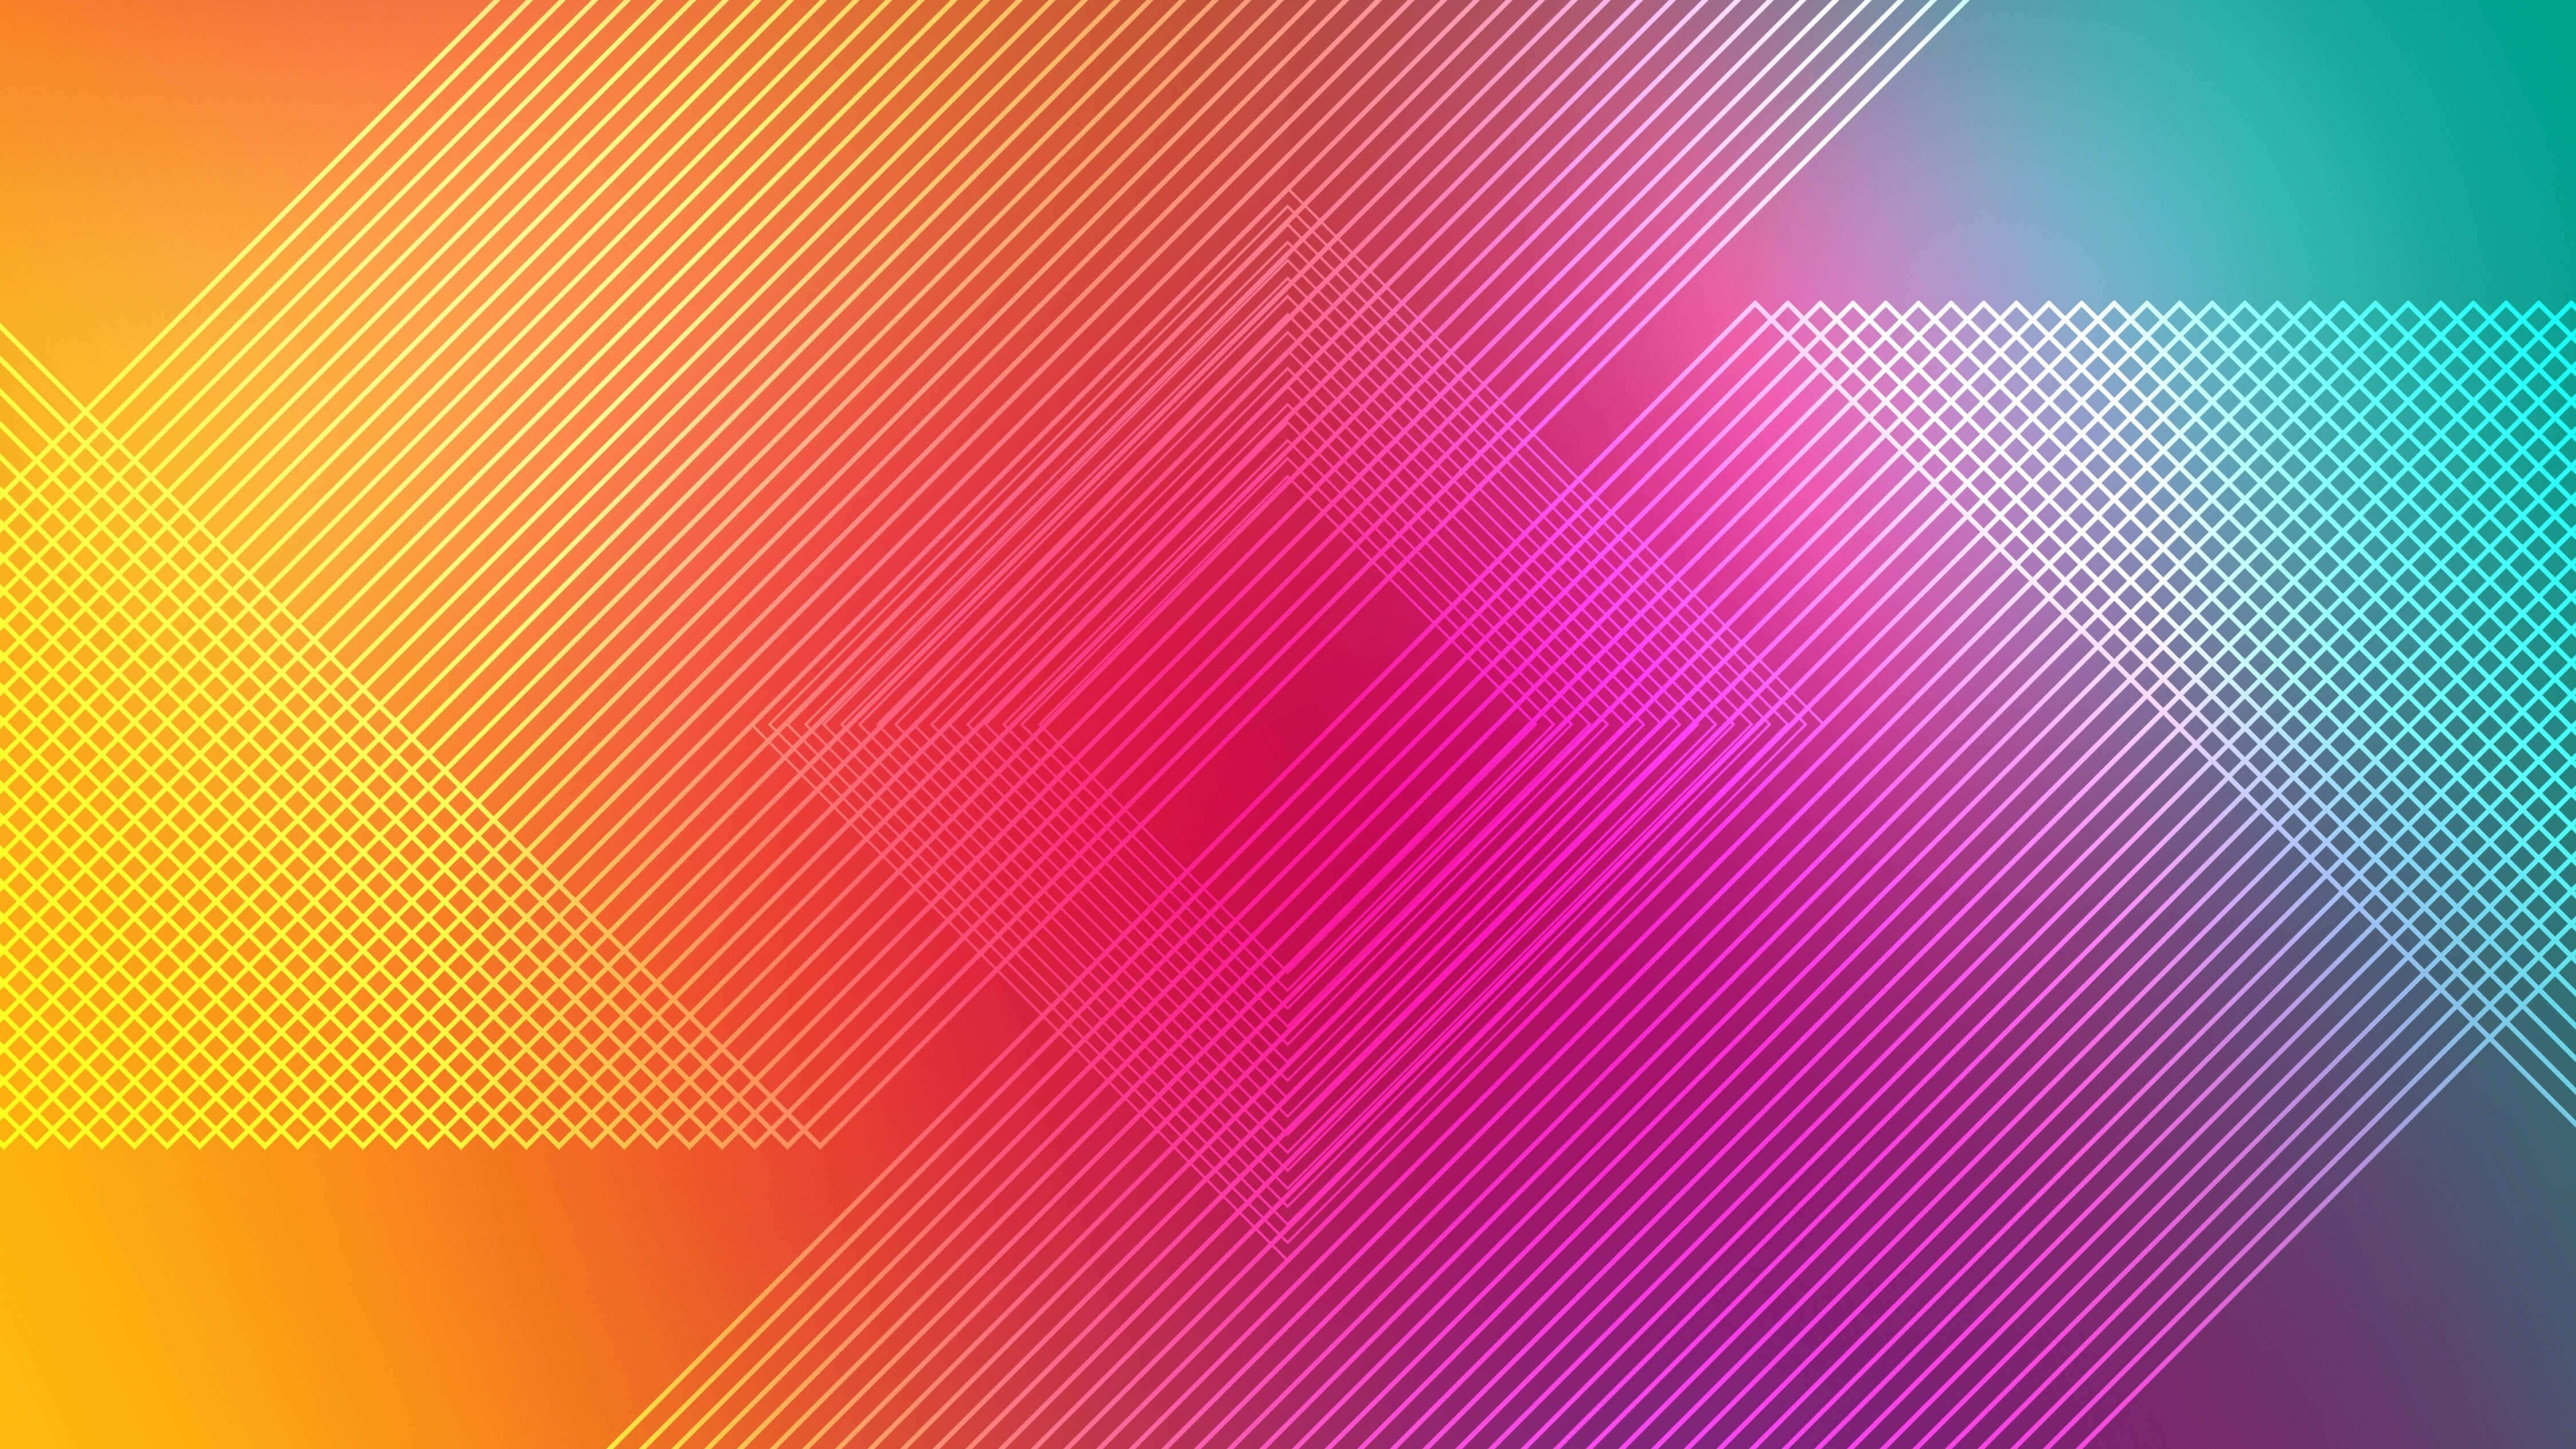 Wallpapers Samsung Galaxy Note 5 Ultra Hd 2160 3840 78: Download 3840x2160 Wallpaper Multicolor, Abstract, Lines